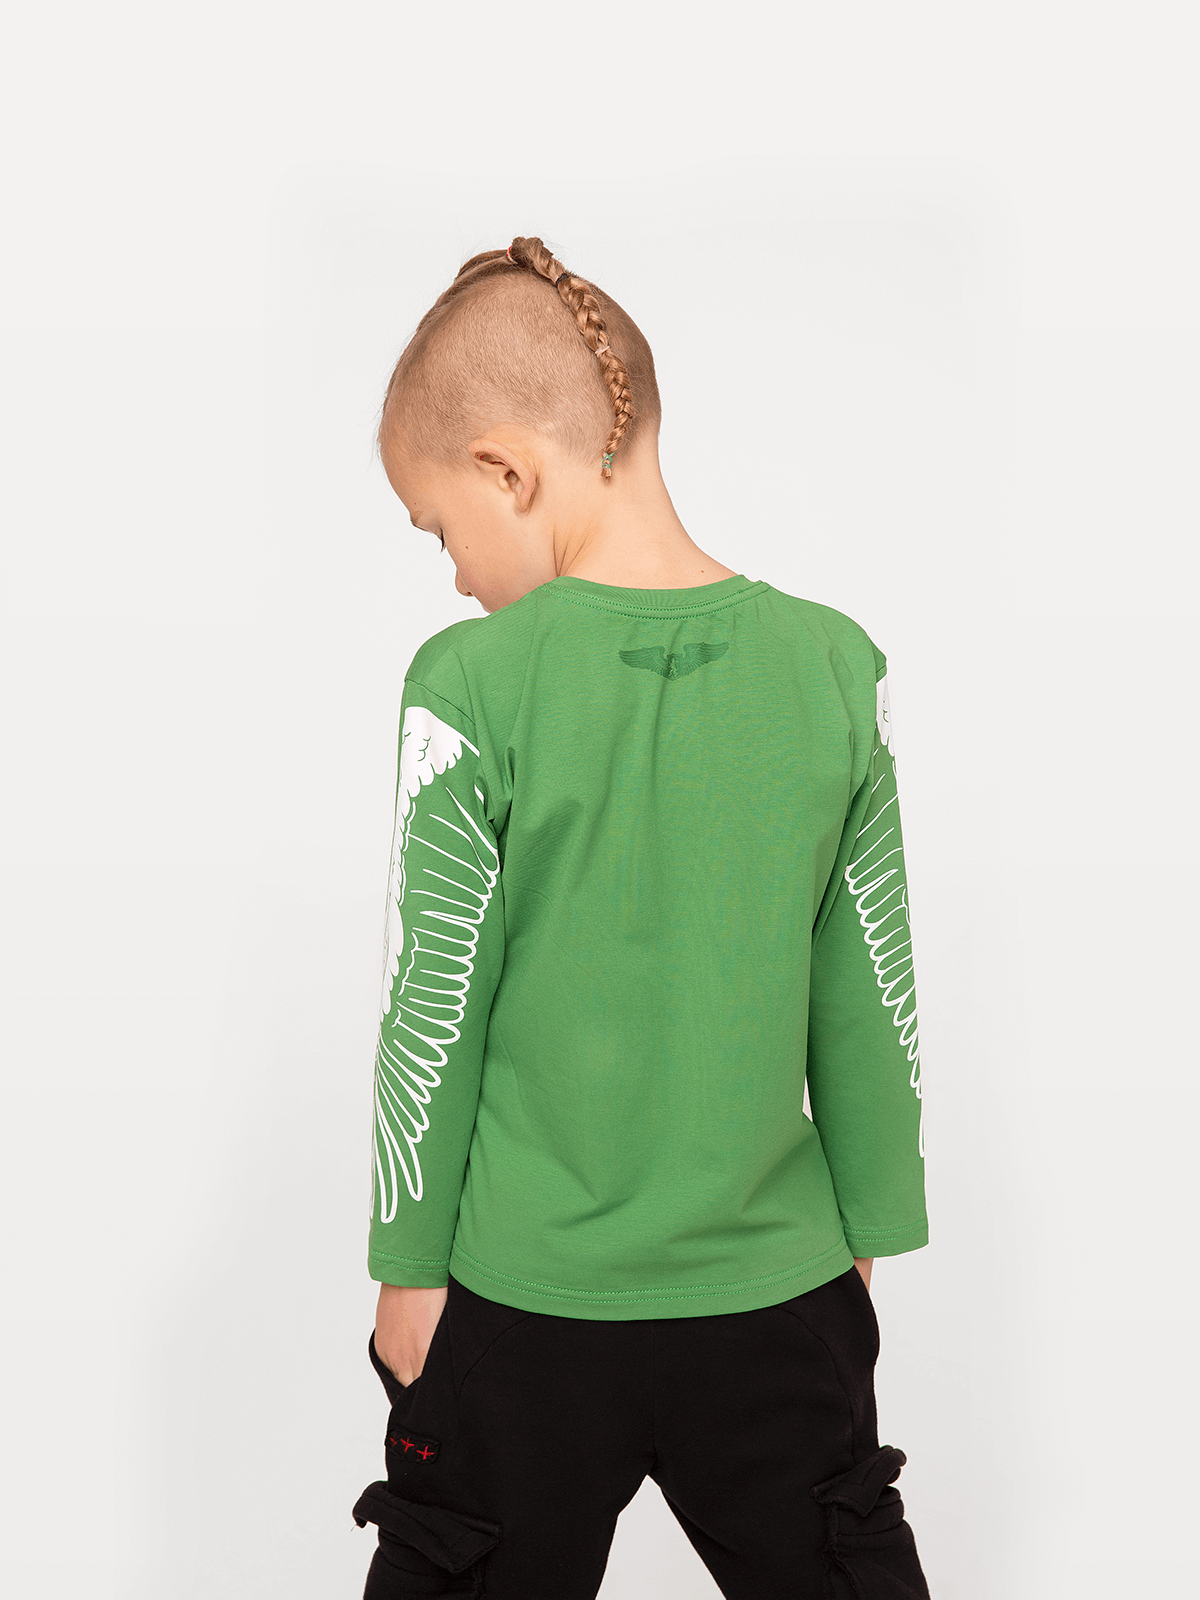 Kids Long Sleeves Stork.   .